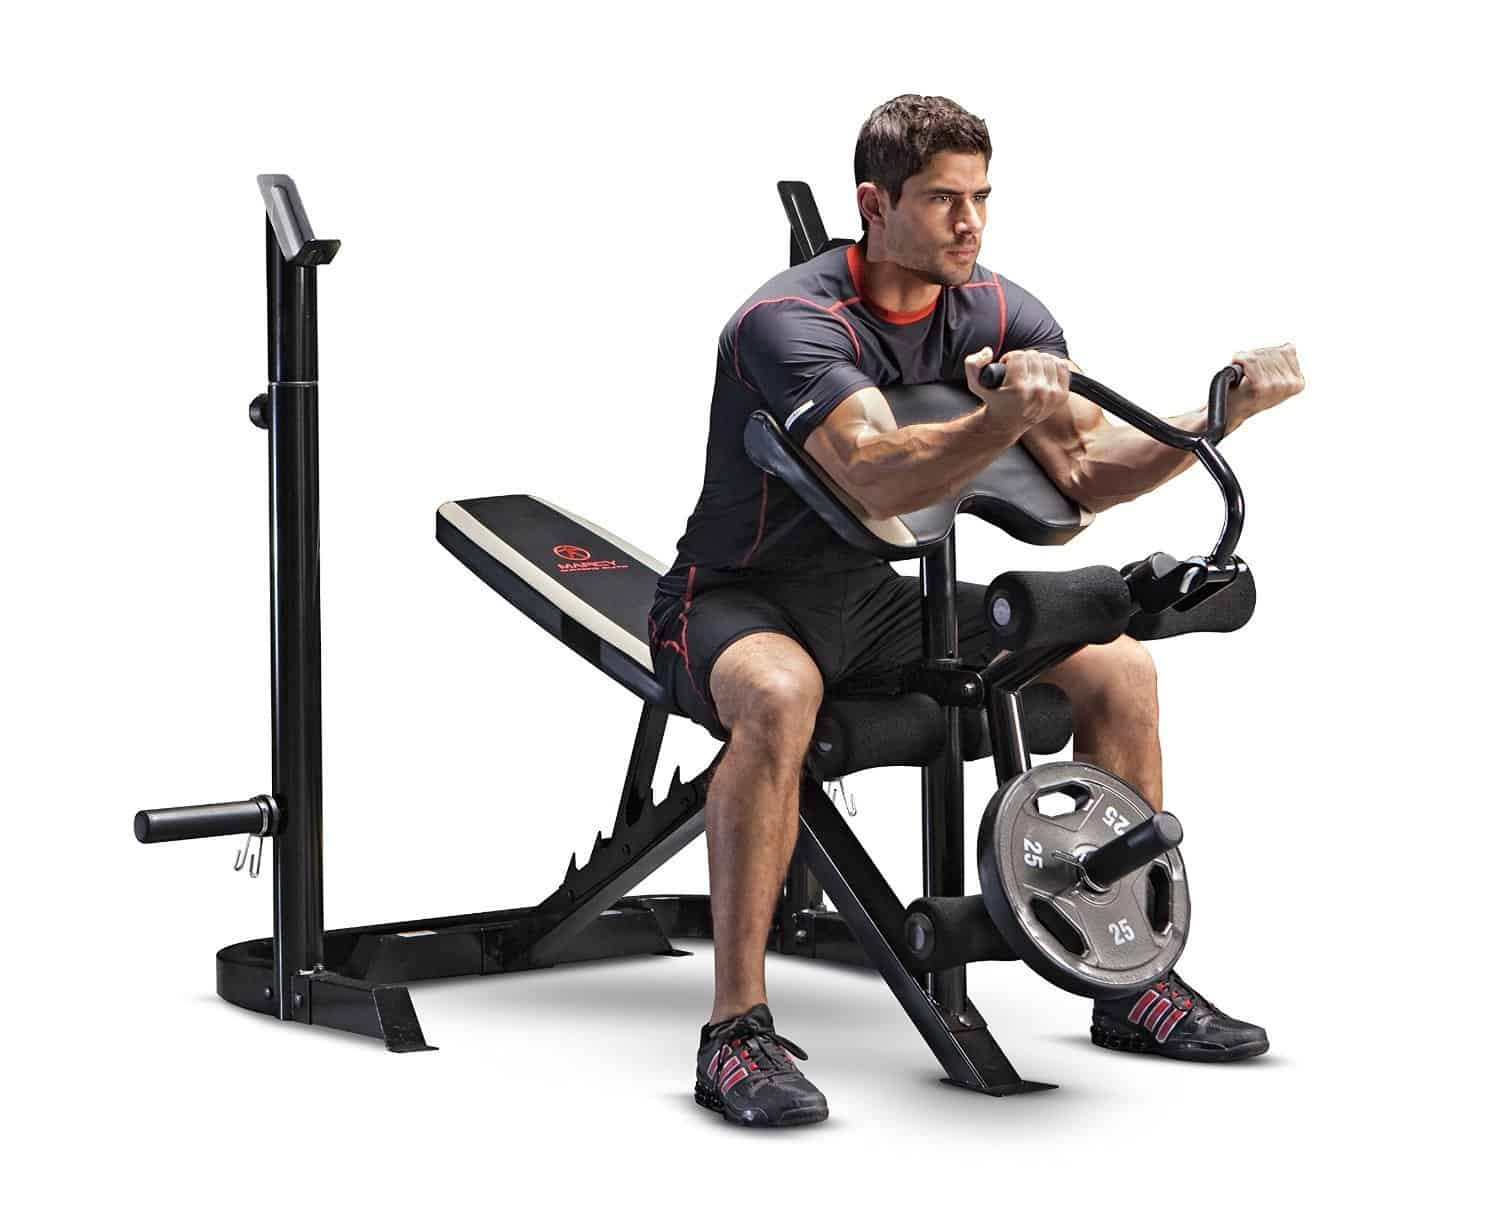 Marcy Adjustable Olympic Workout Bench with Leg Developer and Squat Rack